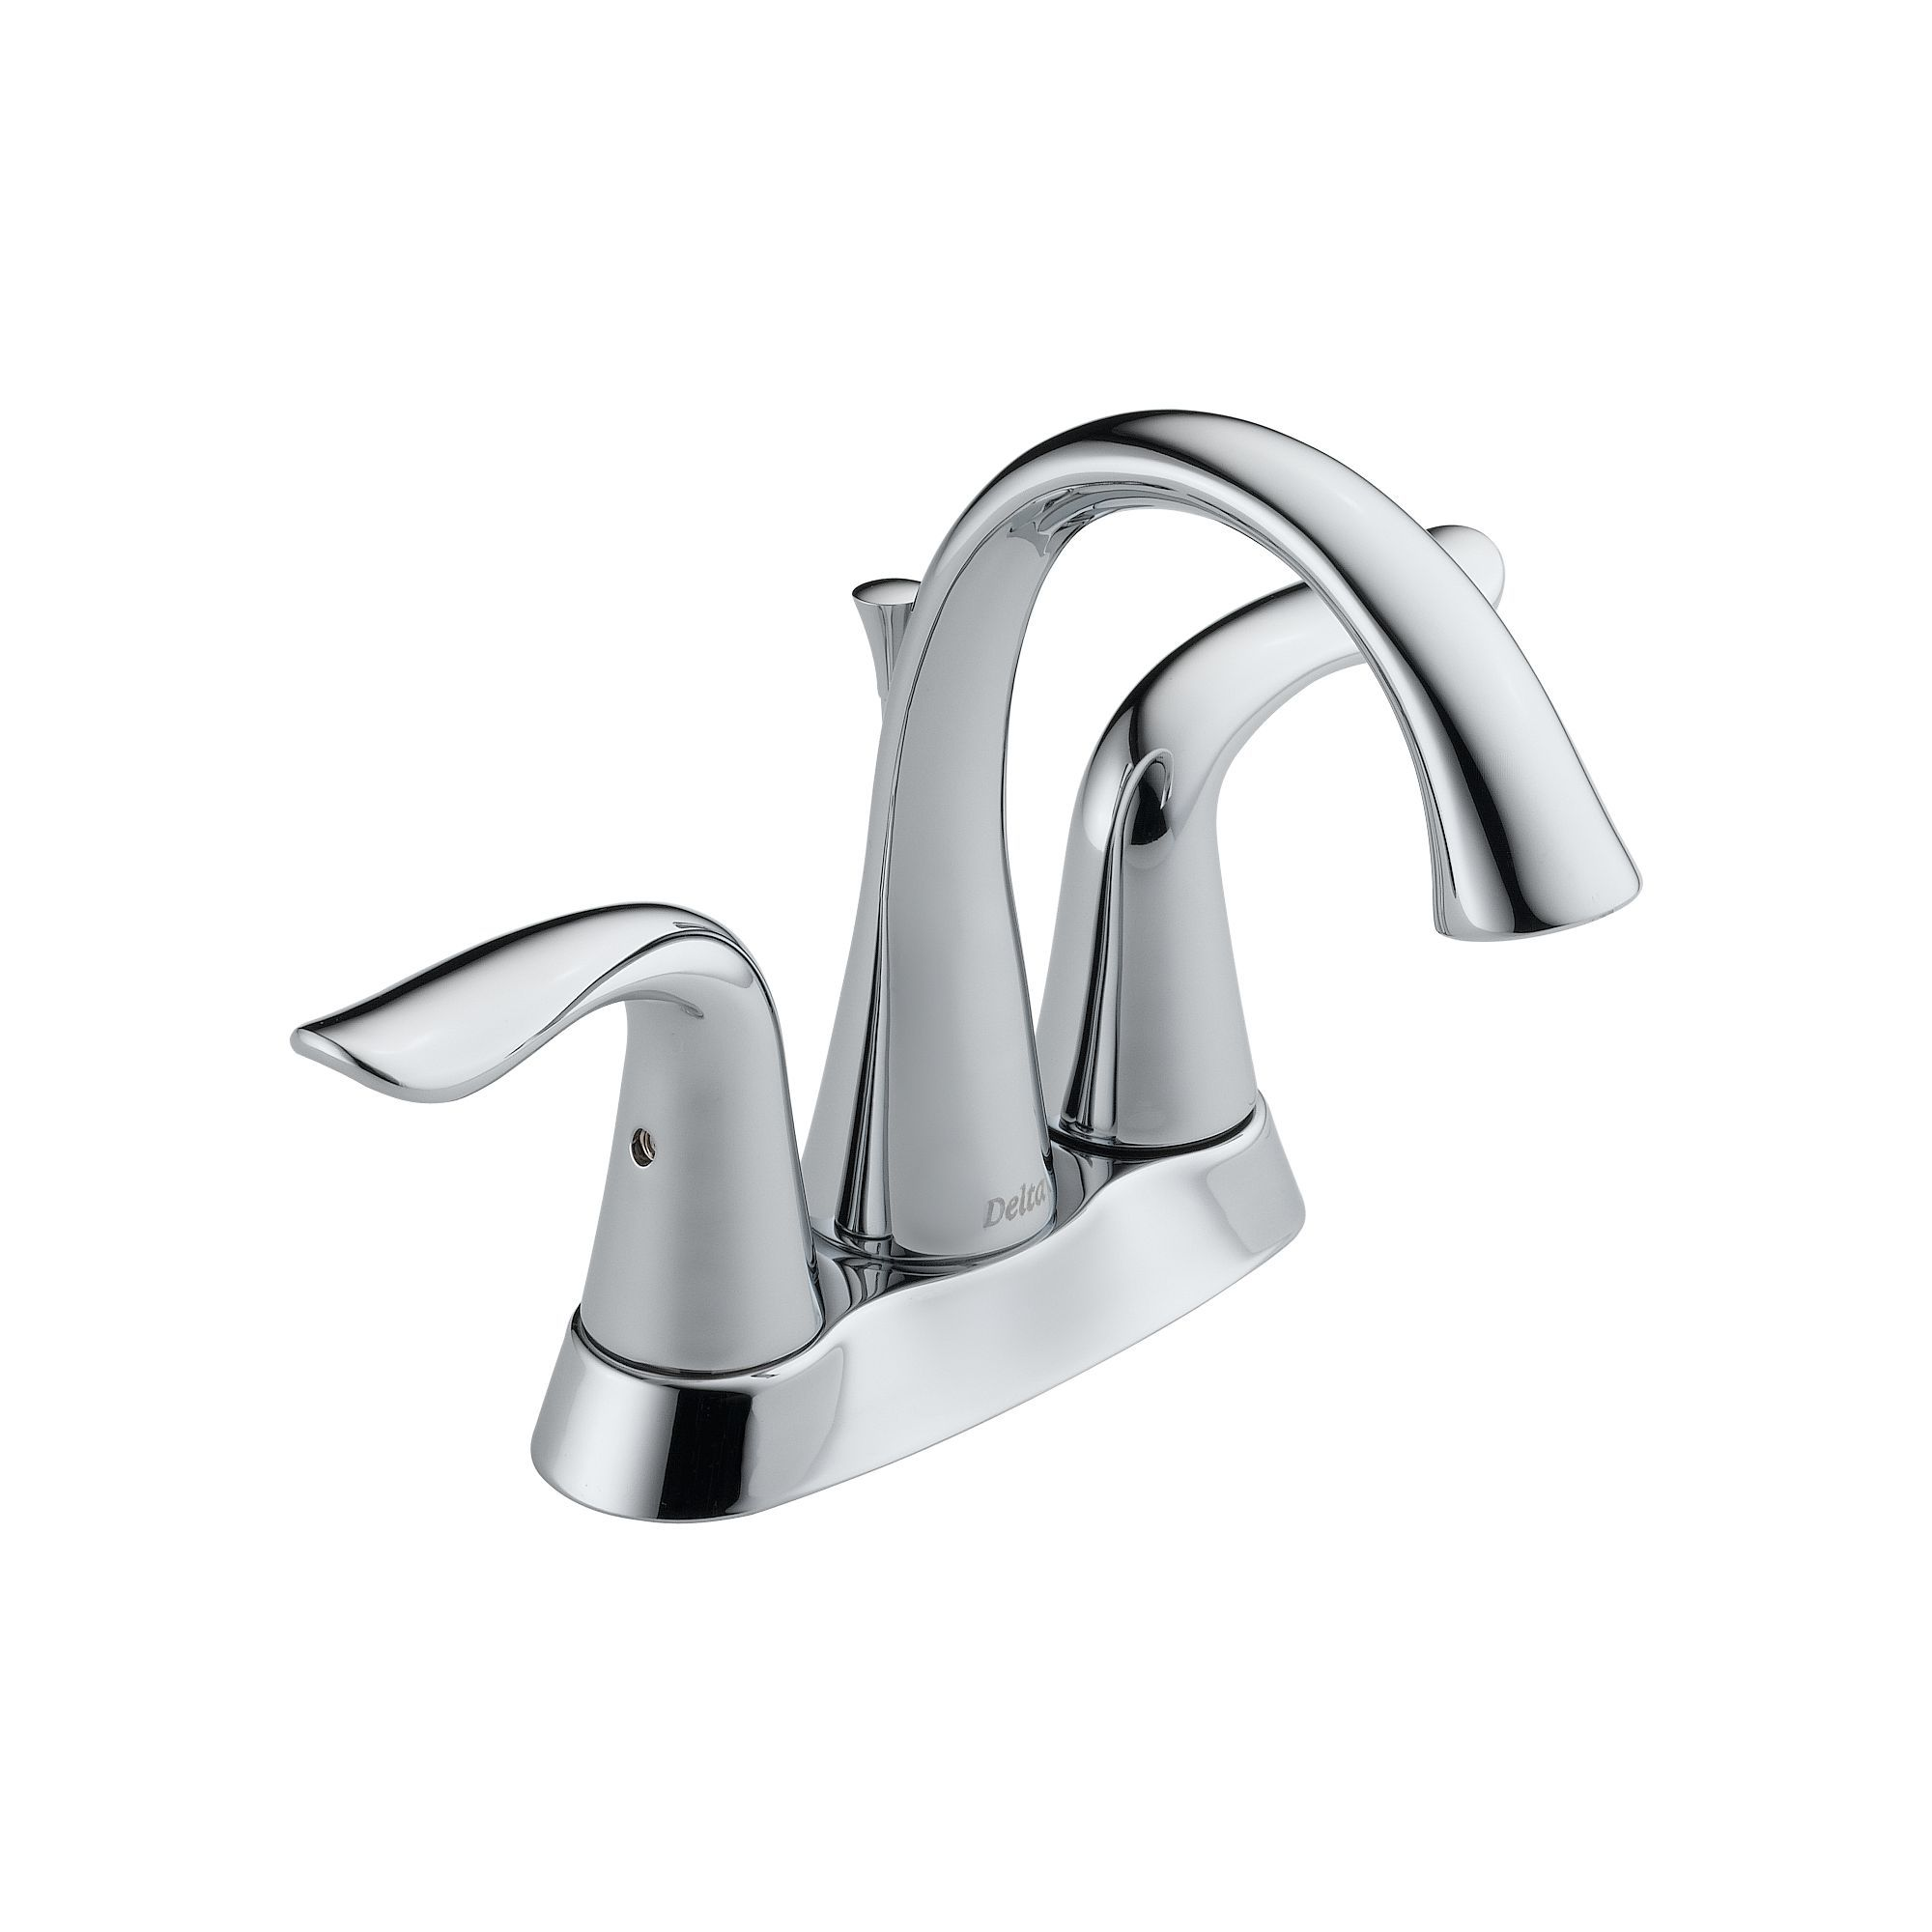 Delta 2538 Tp Dst Chrome Lahara Centerset Bathroom Faucet With Pop